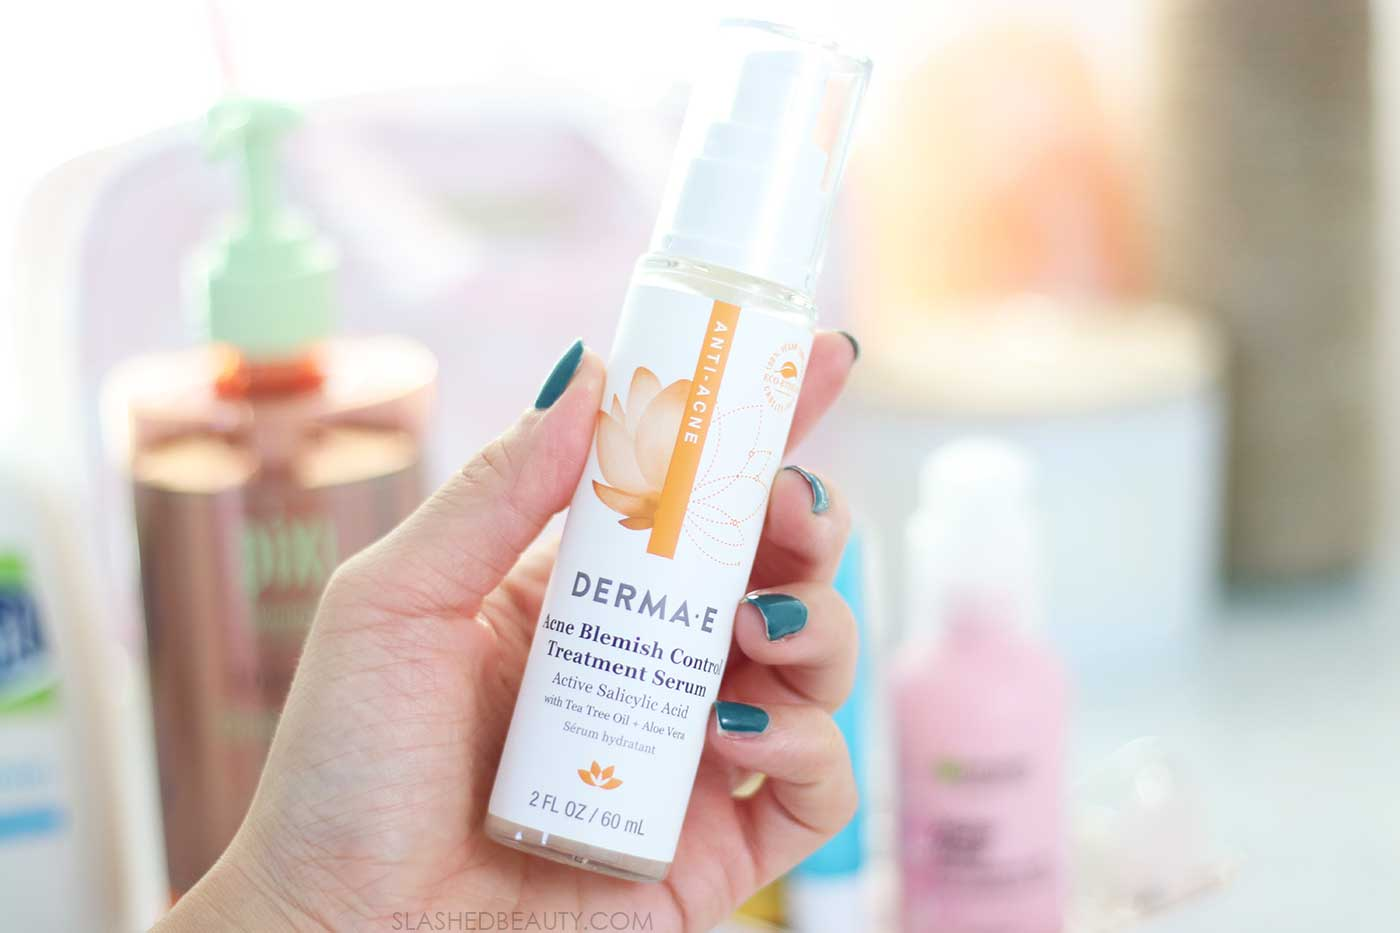 Derma E Acne Blemish Control Treatment Serum | Best Drugstore Skin Care for Acne Prone Skin | Slashed Beauty